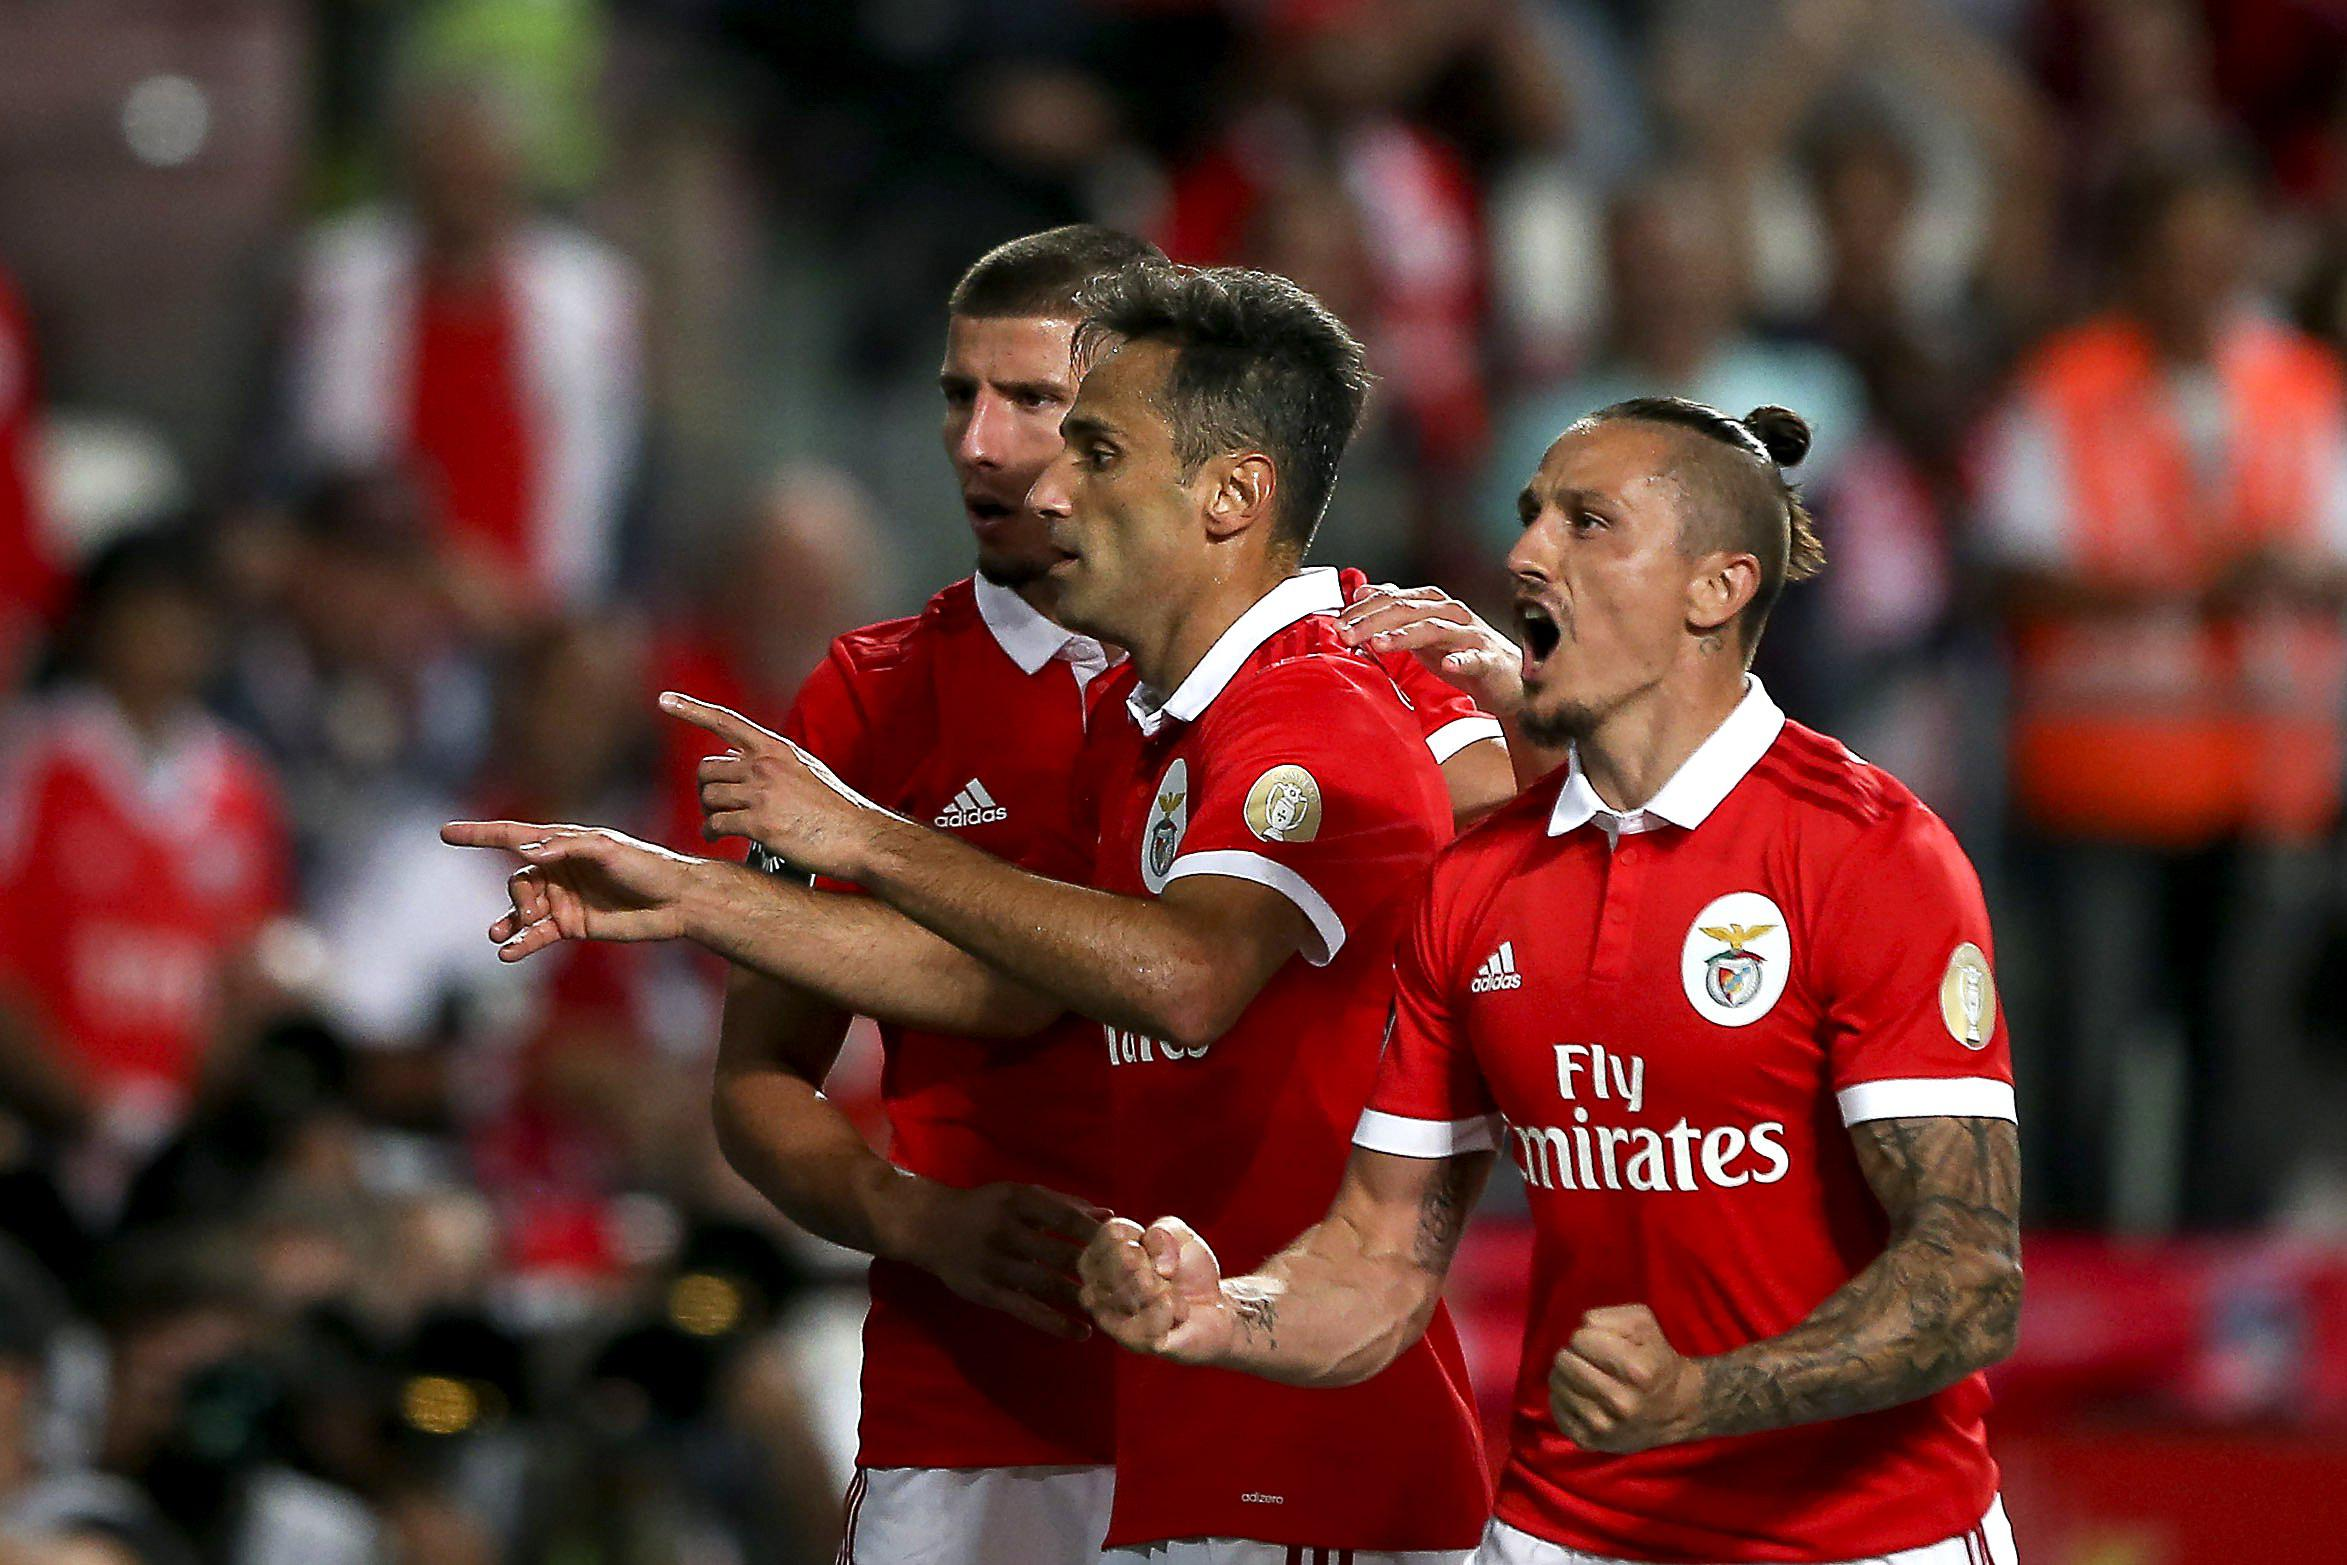 Jonas is Benfica's most potent goal threat